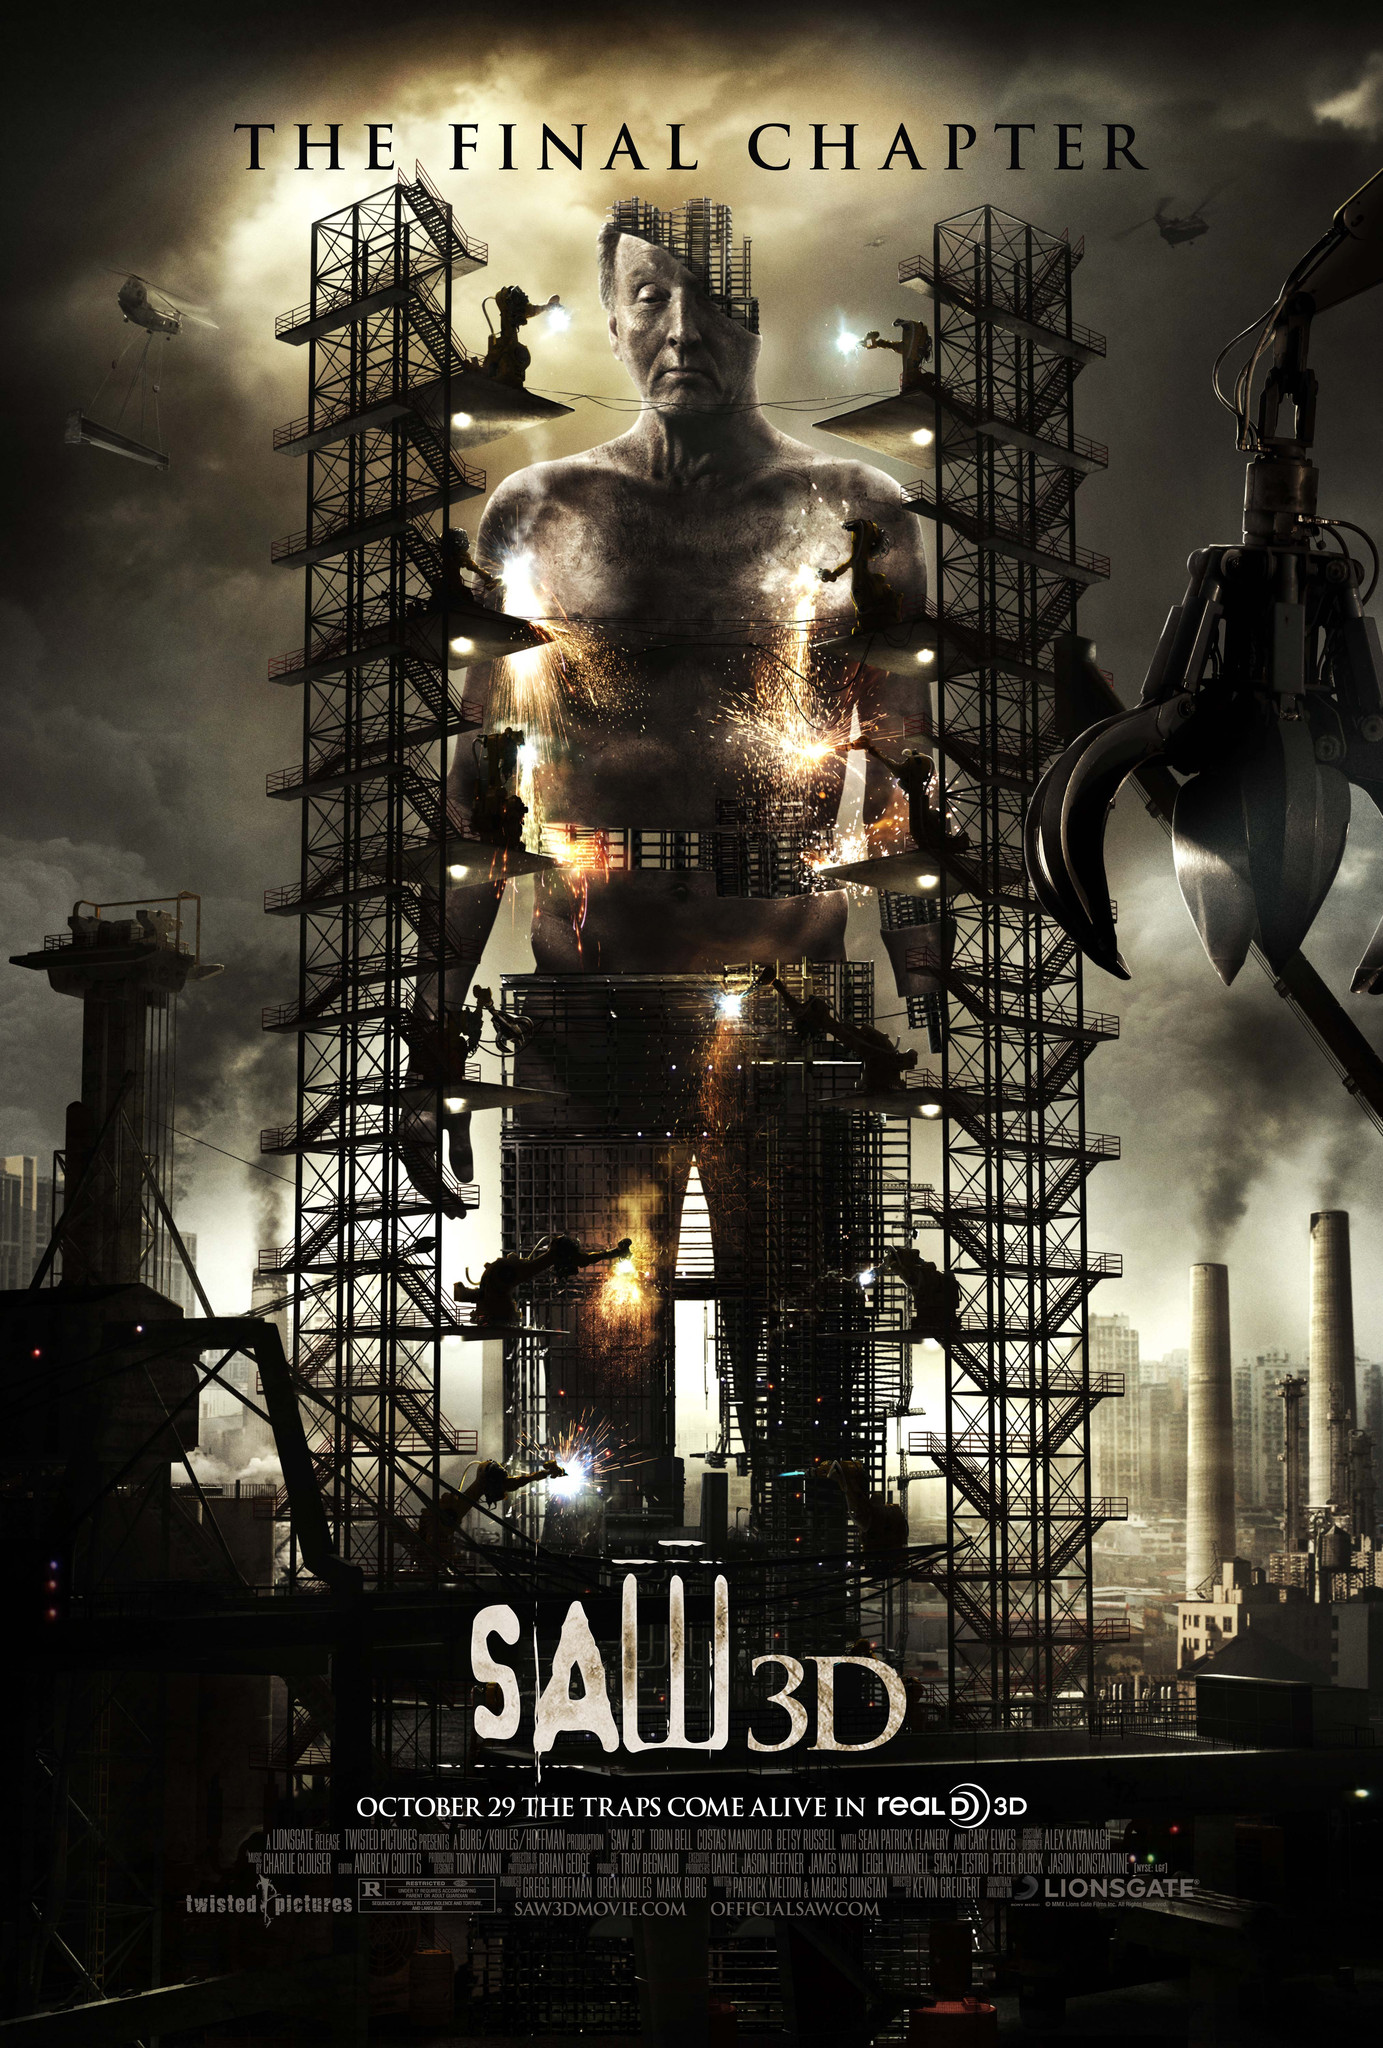 Saw 3D: The Final Chapter (2010) BluRay 720p & 1080p